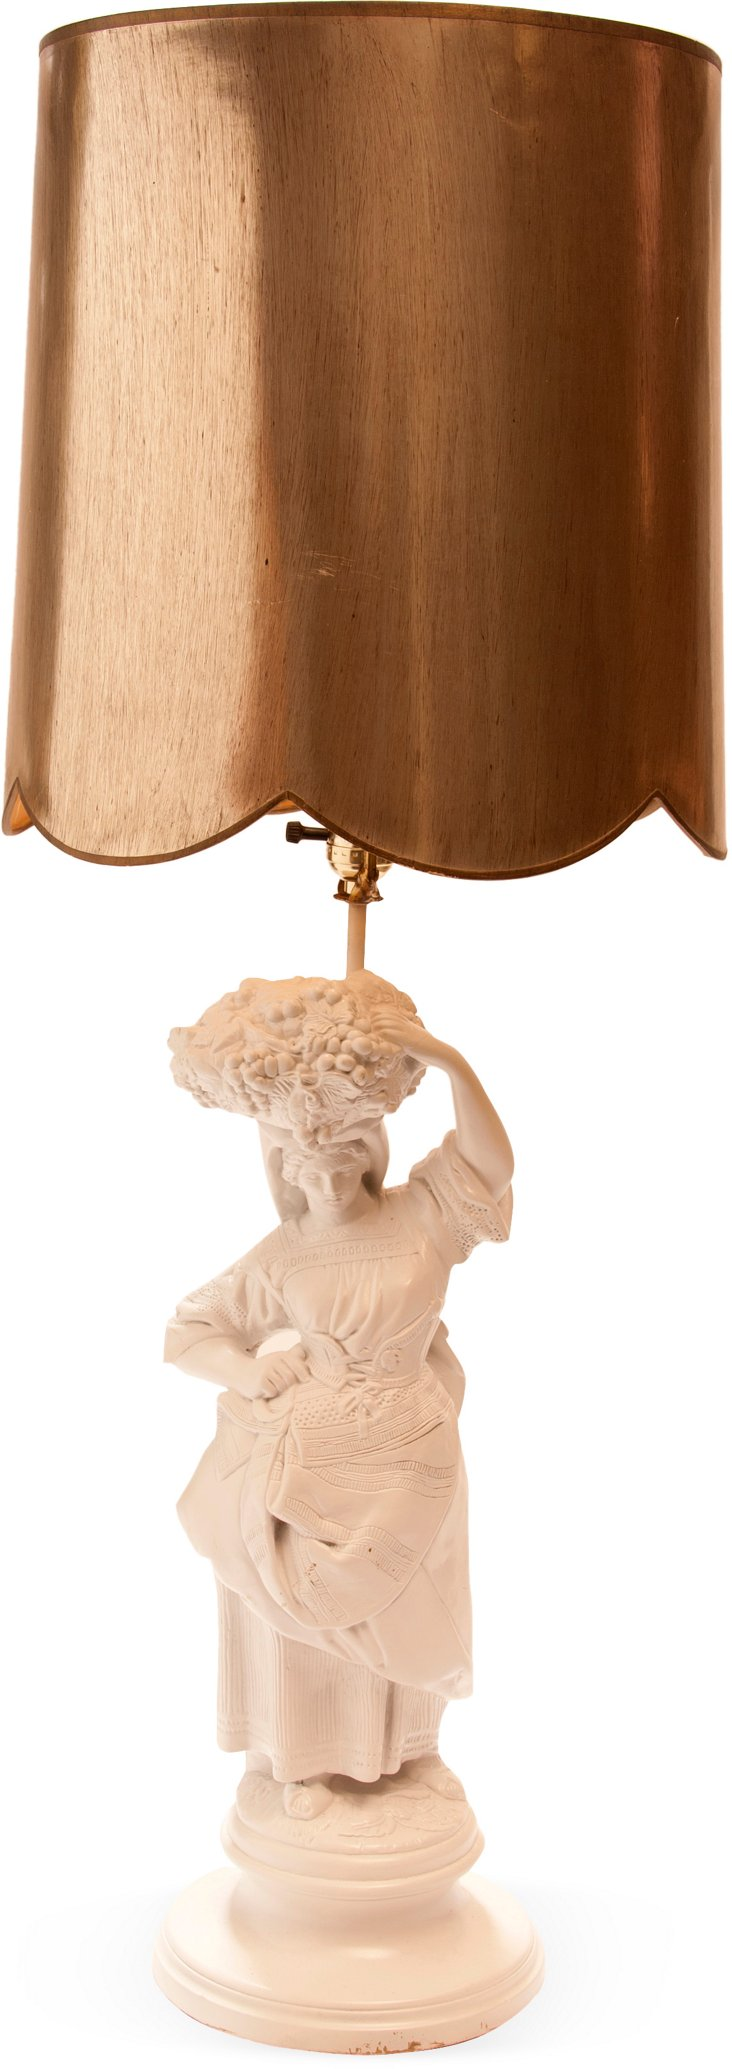 Harvest Lady Lamp